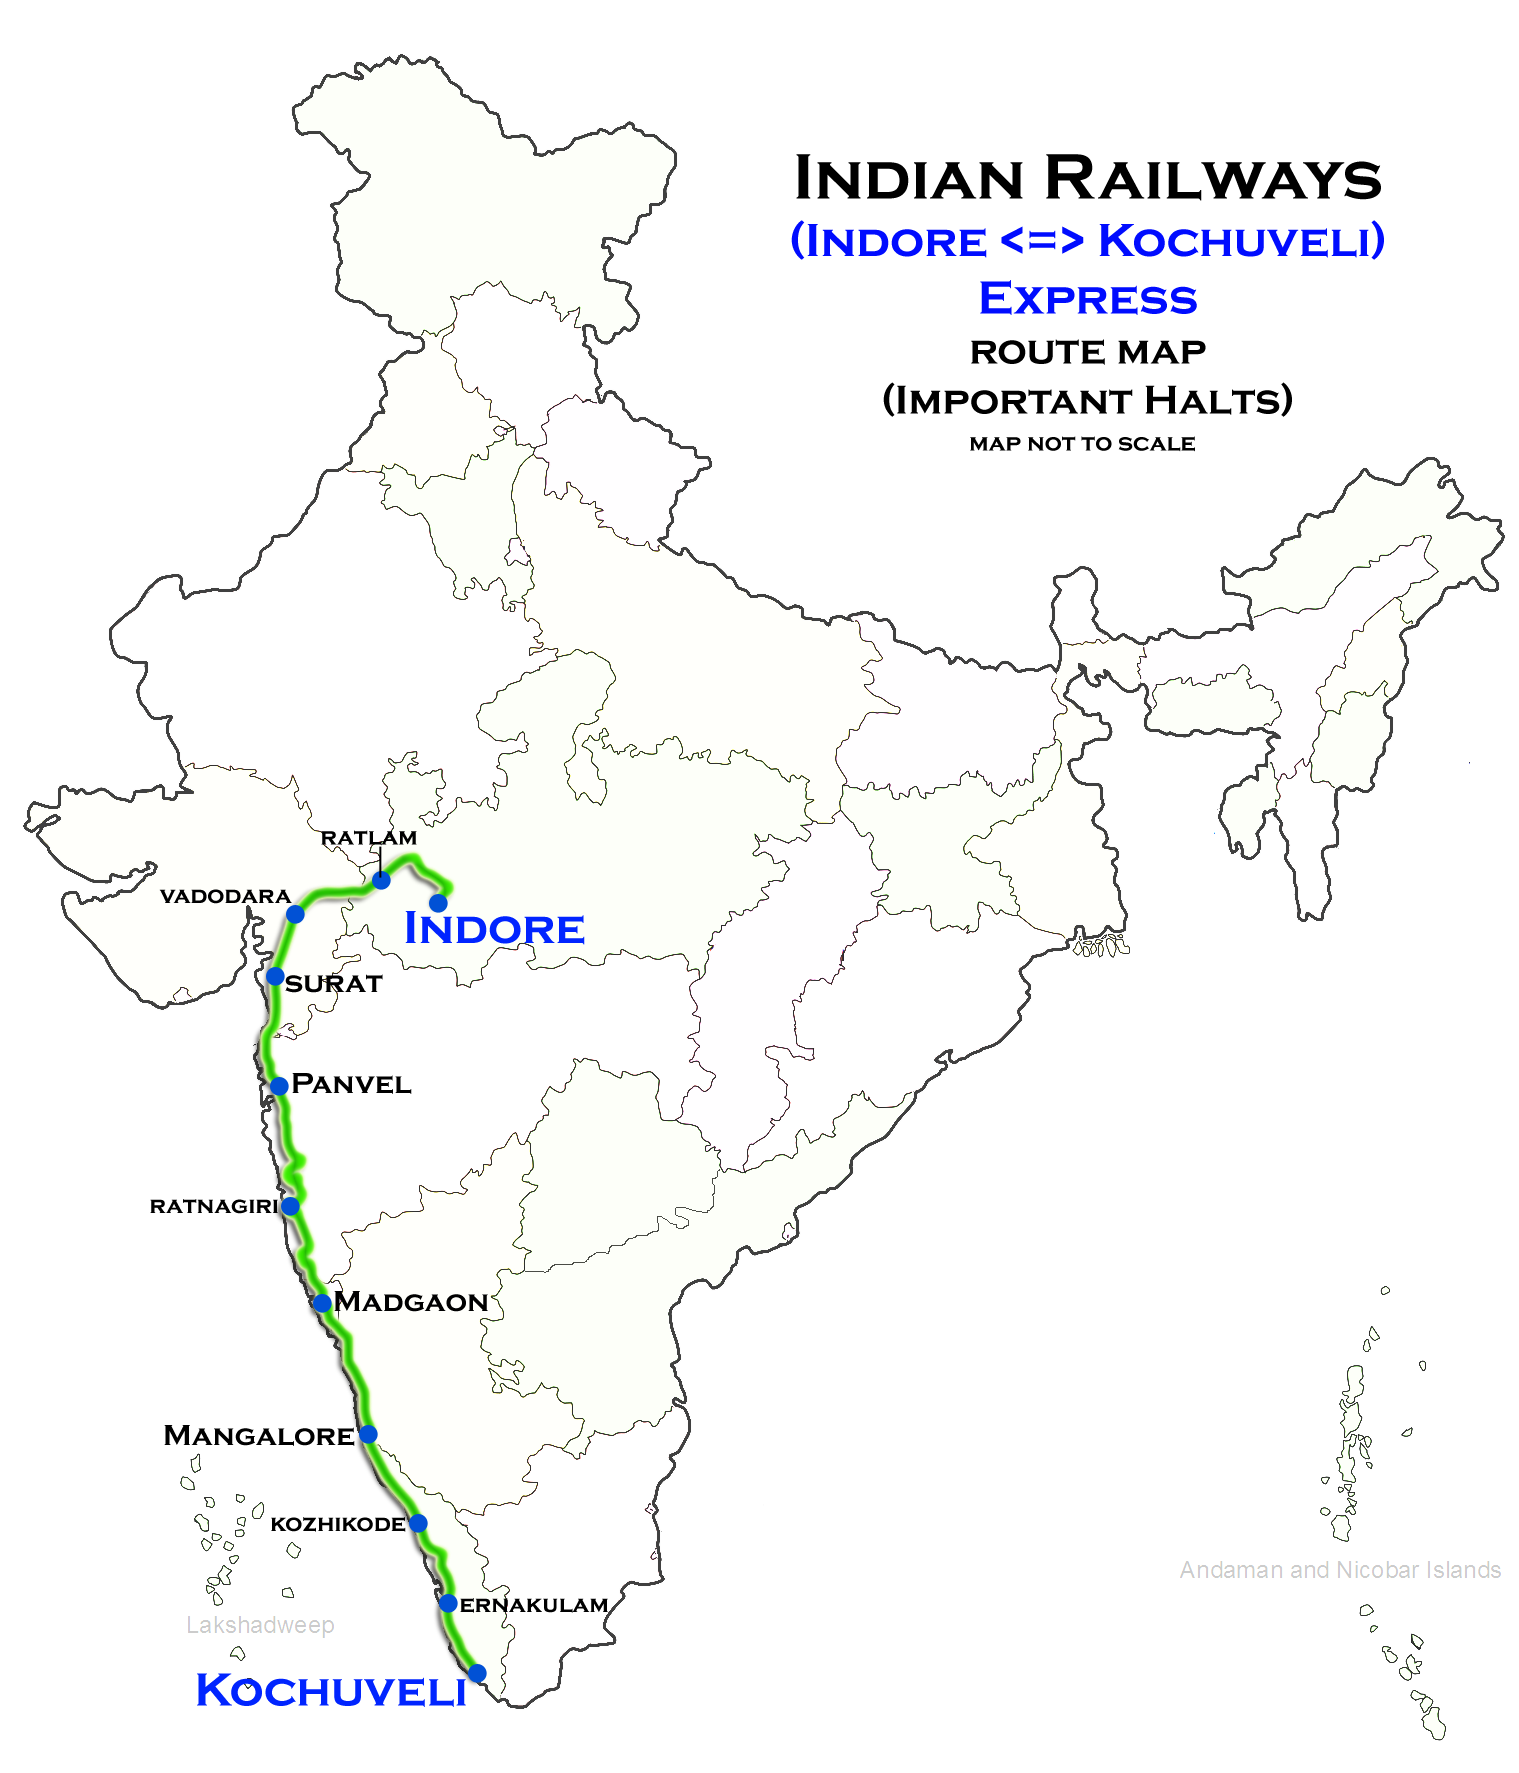 Kochuveli - Indore Weekly Express - Wikipedia on indian railway food, indian railways logo, indian railway network, indian railway enquiry, auto train route map, indian rail route, us train routes map, indian railway fare table, indian railway ticket availability, pakistan railway track map, indian railways seat availability, transcontinental railroad route map, indian railway schedule, european train route map, indian railway reservation, india railway map, indian railway timetable, indian railway stations, mt. shasta route map, ferdinand magellan's route map,